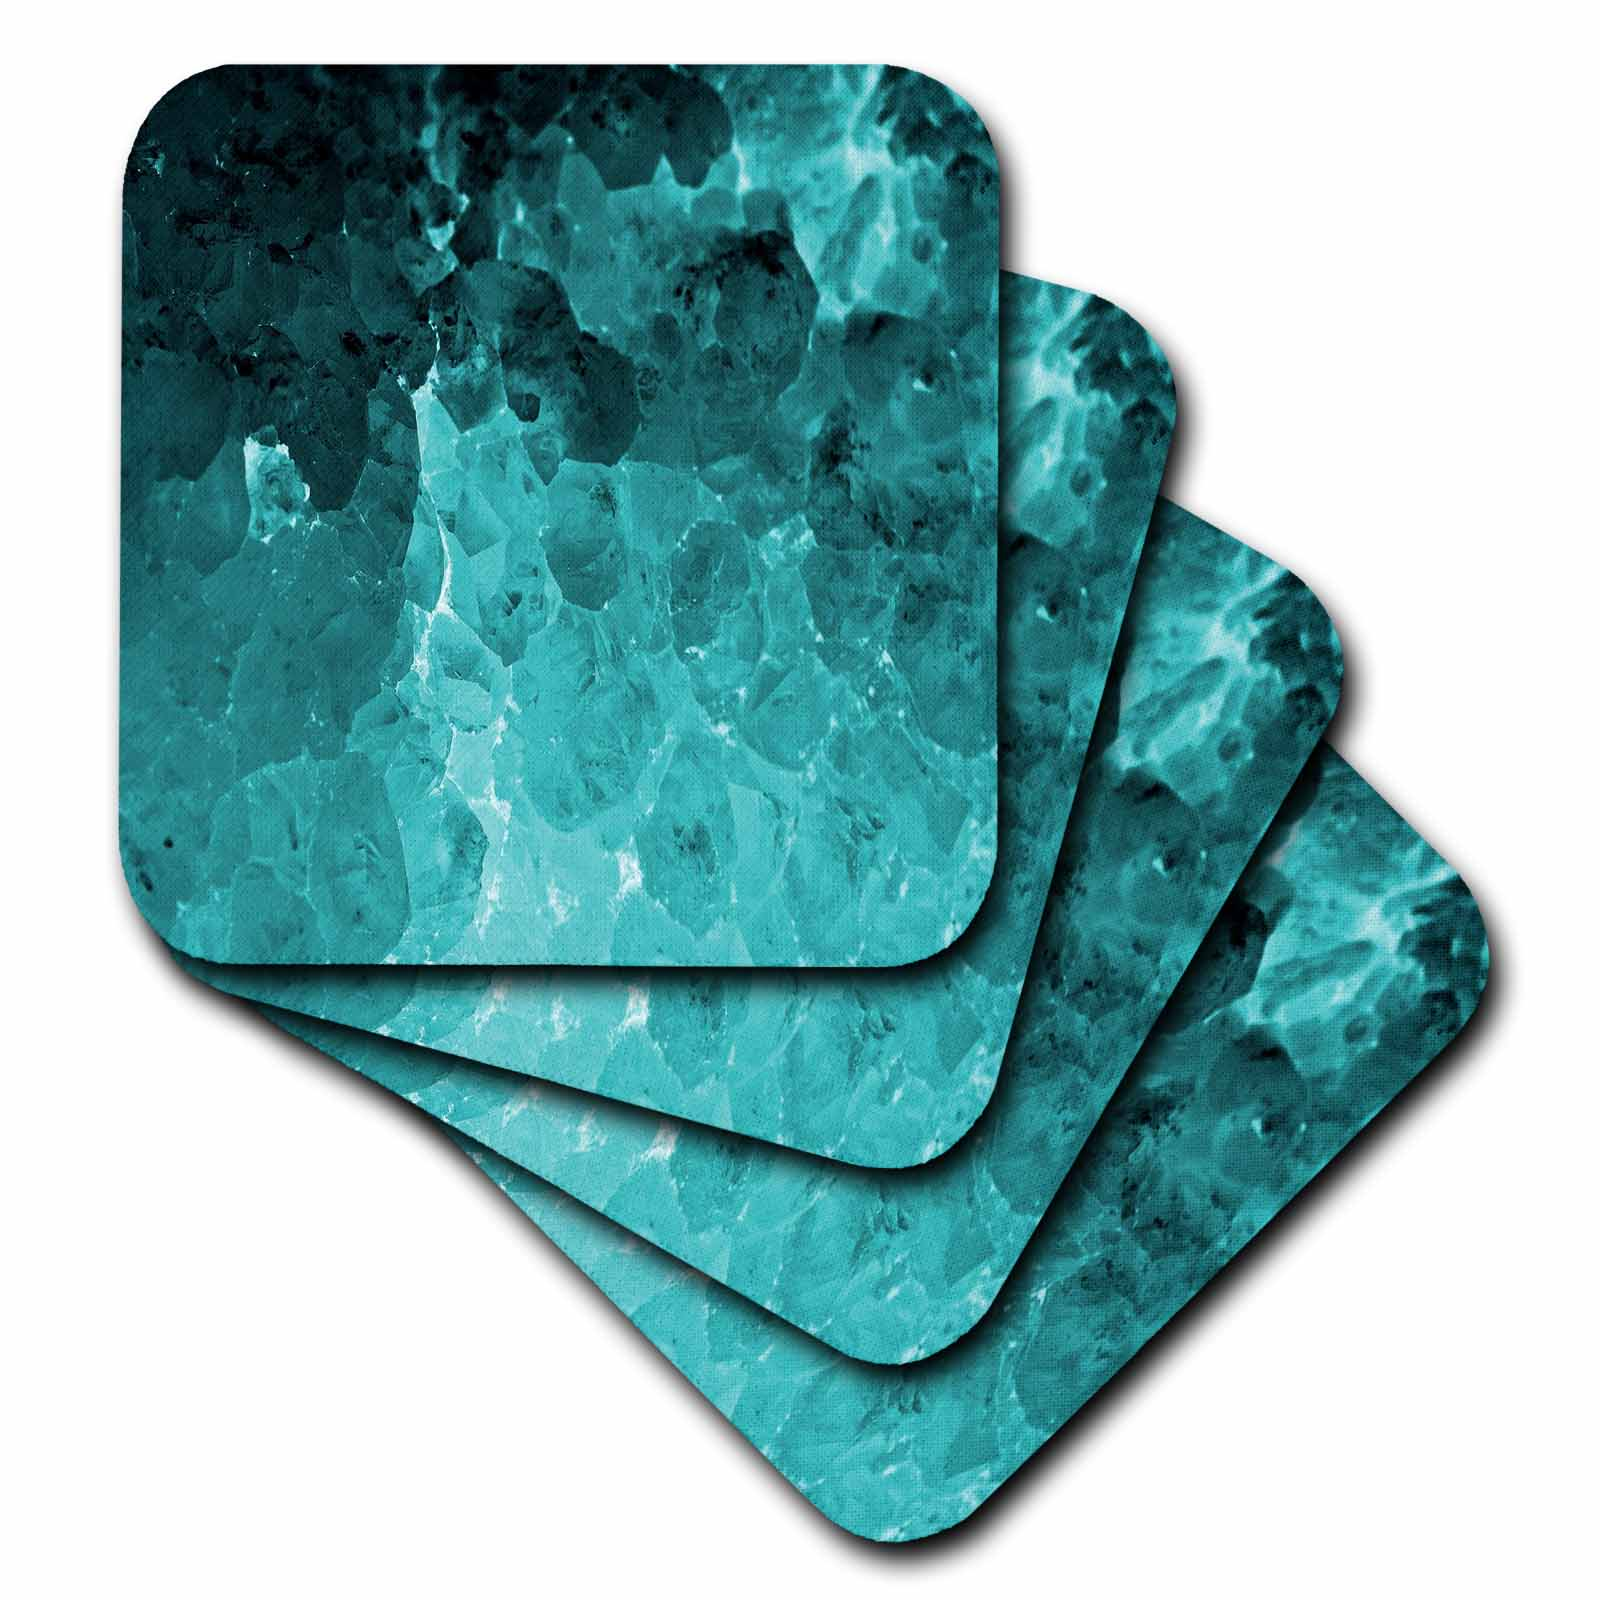 3dRose Turquoise Natural Crystal Look Soft Coasters, set of 8 by 3dRose